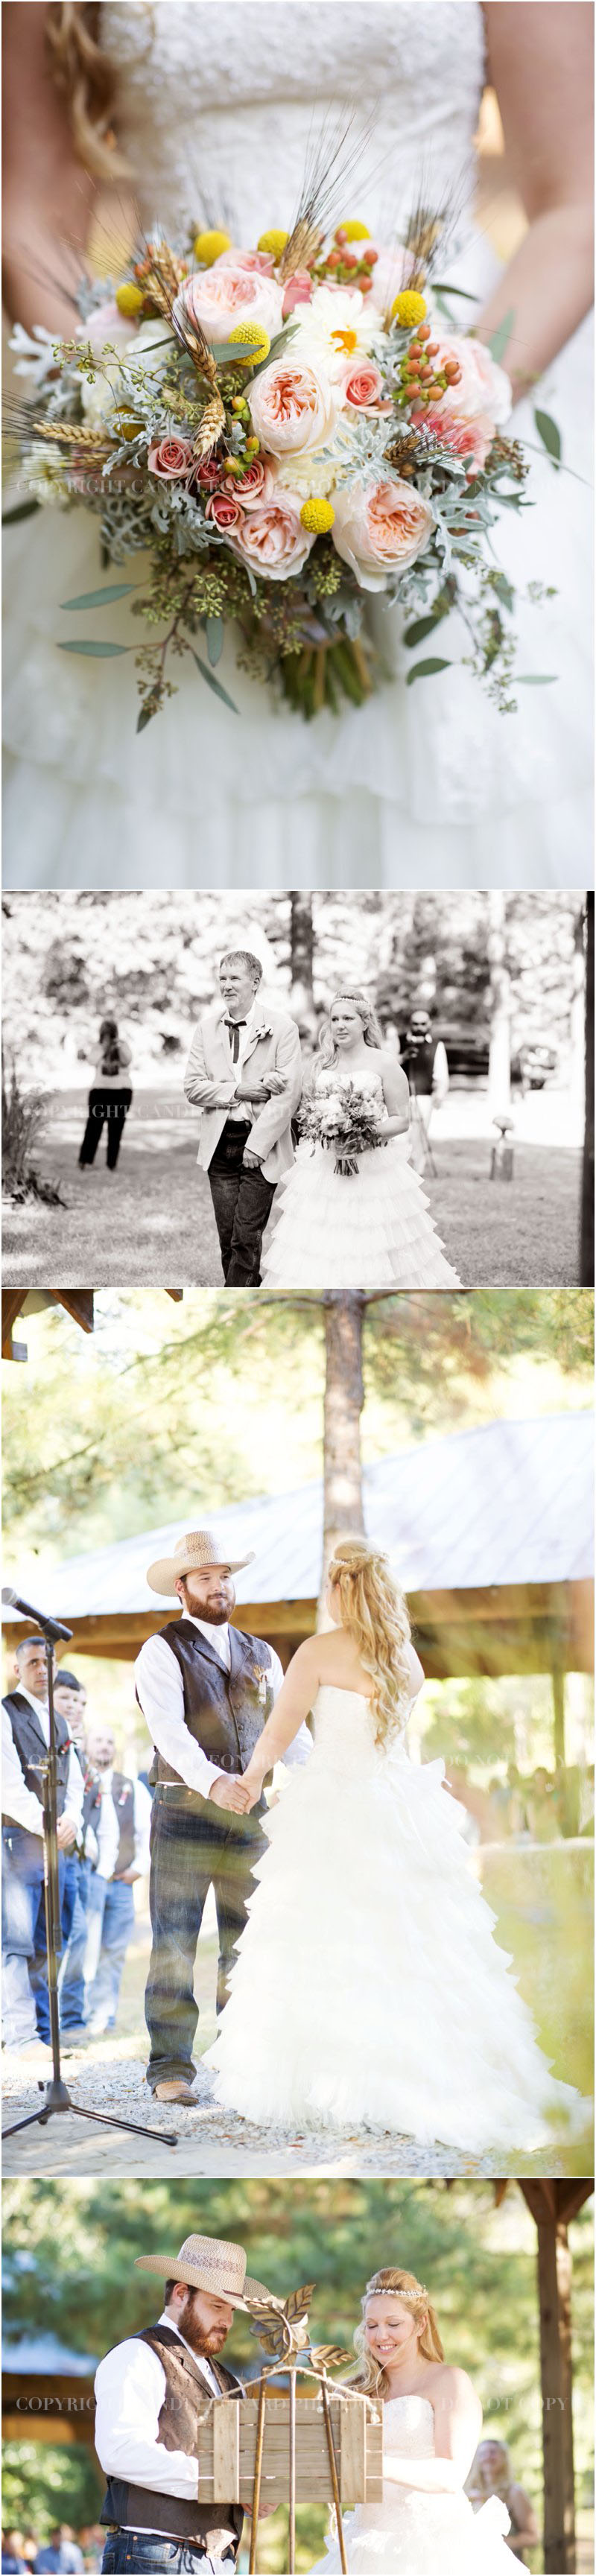 ASHEBORO_NC_wedding_photographer_0977